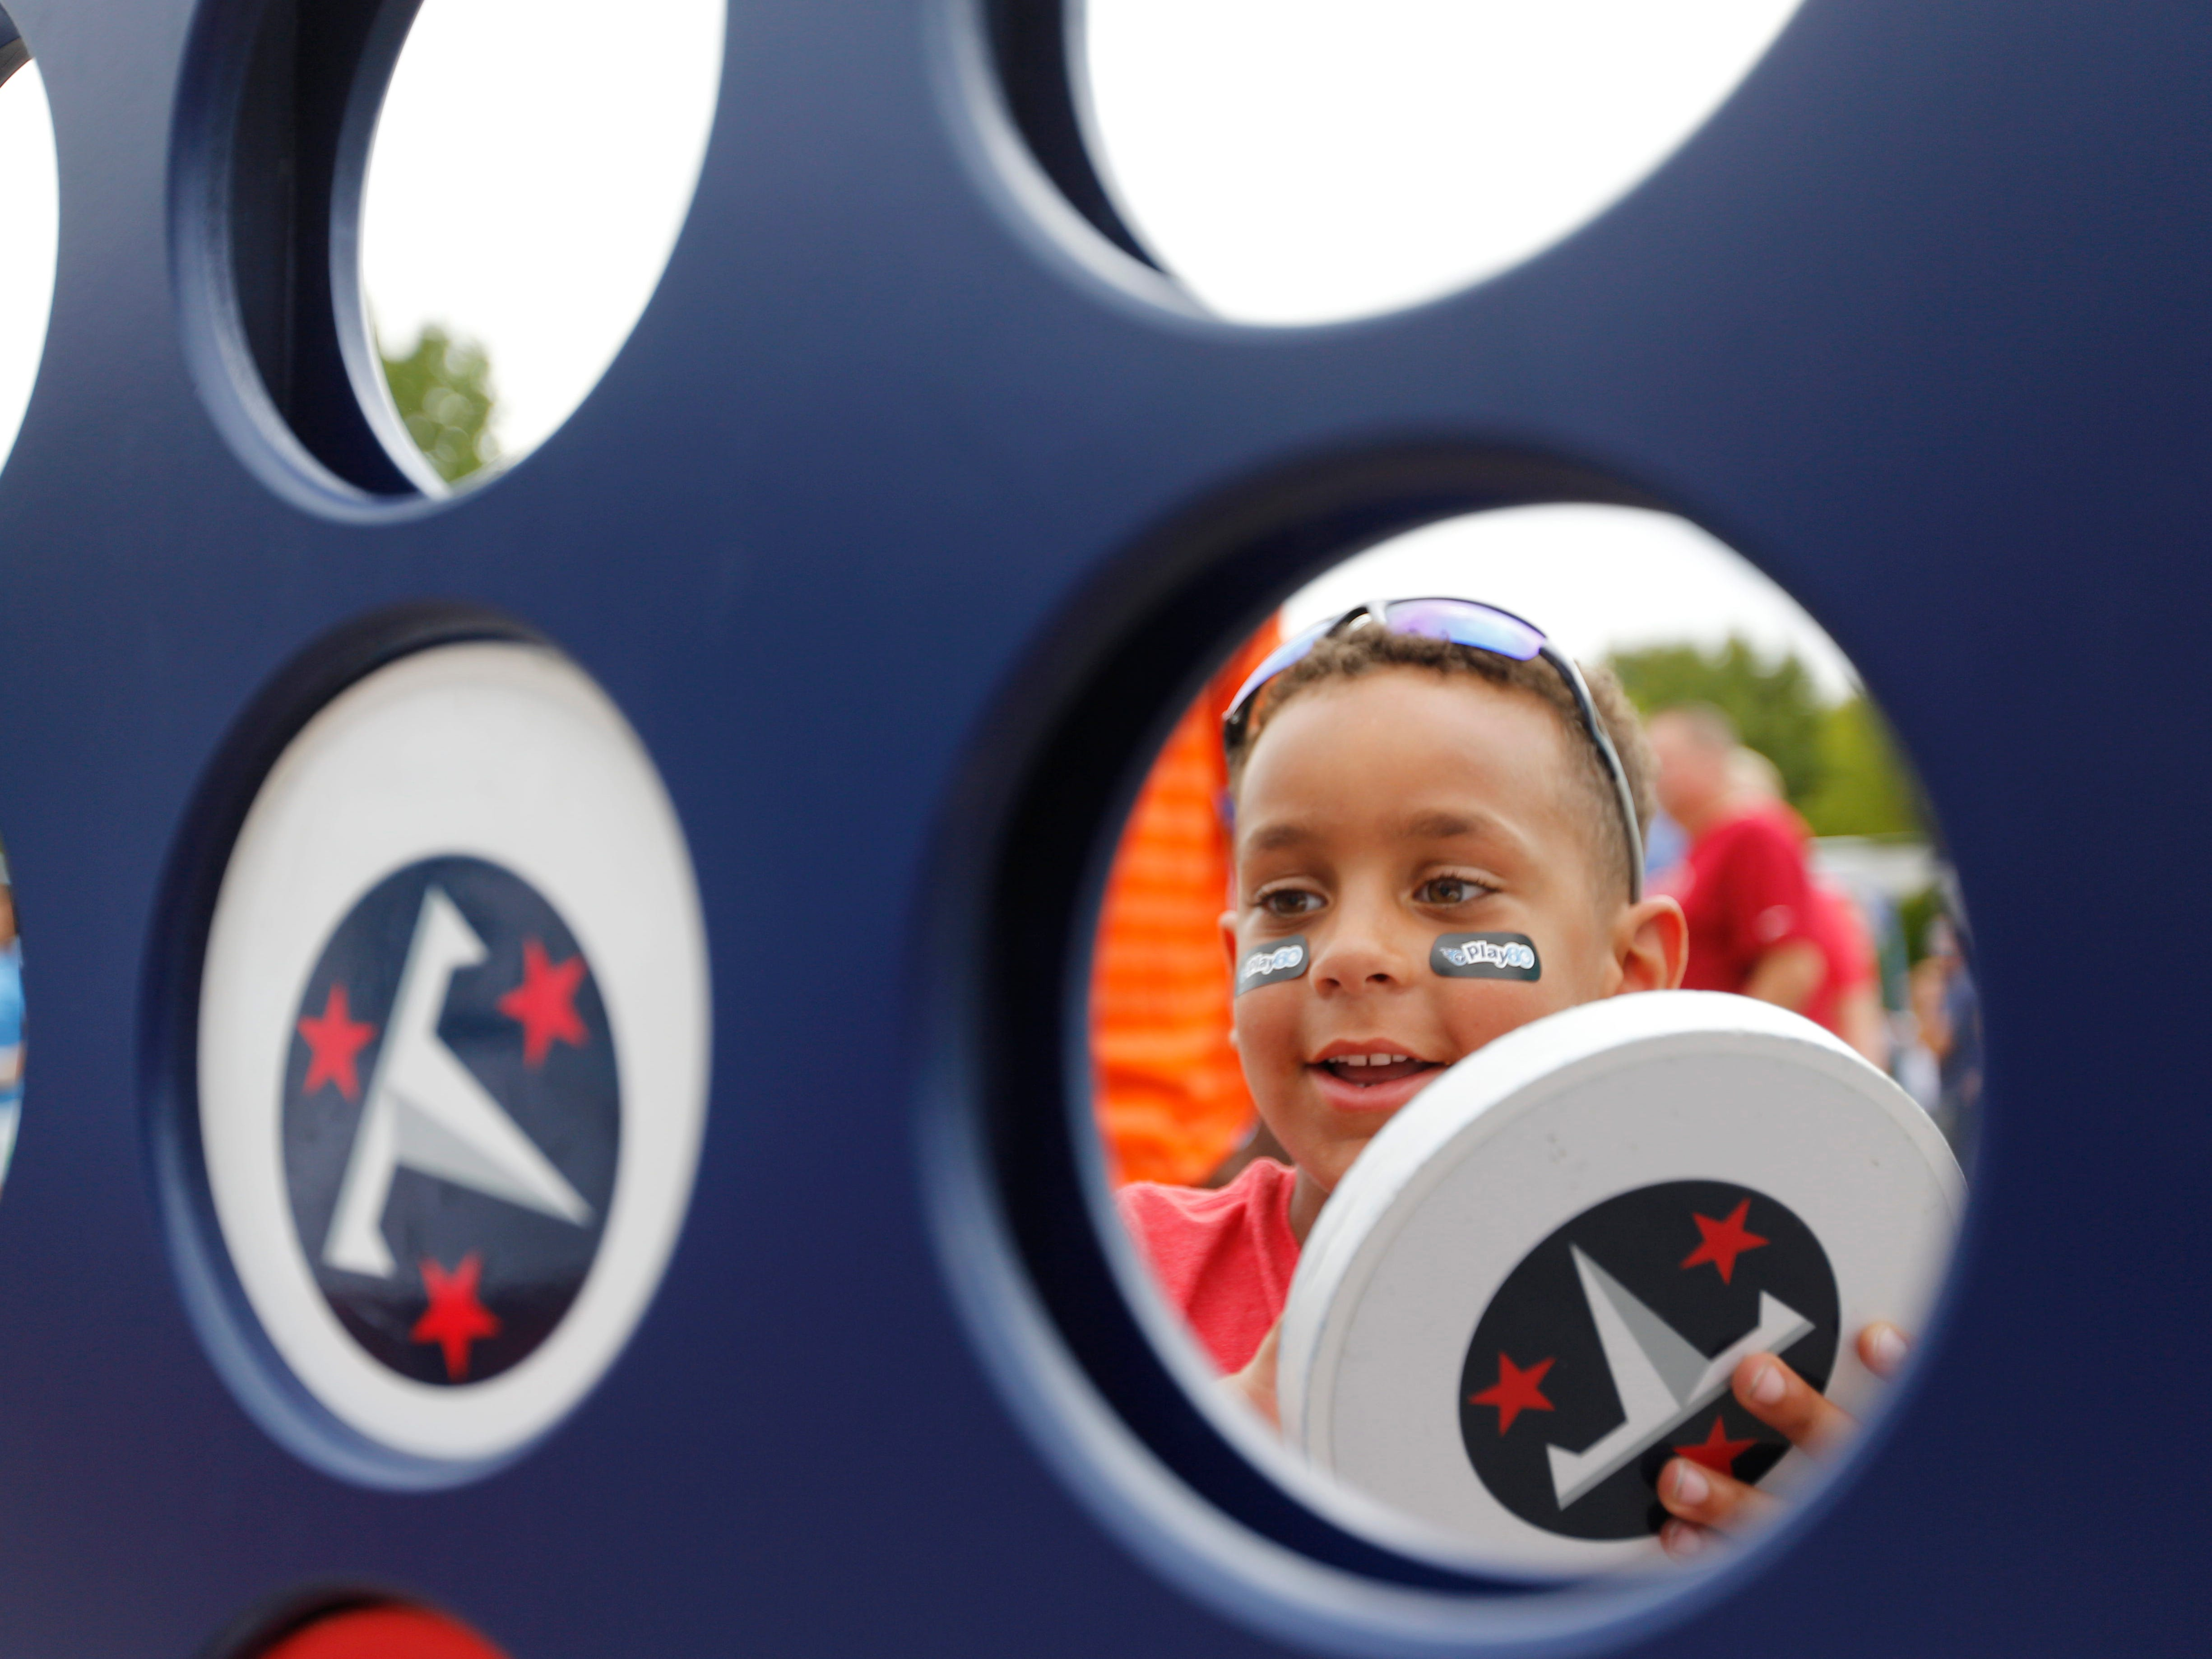 Tavian Alexander, 5, of Smyrna, plays a game of Connect Four before the game at Nissan Stadium Sunday, Sept. 16, 2018, in Nashville, Tenn.